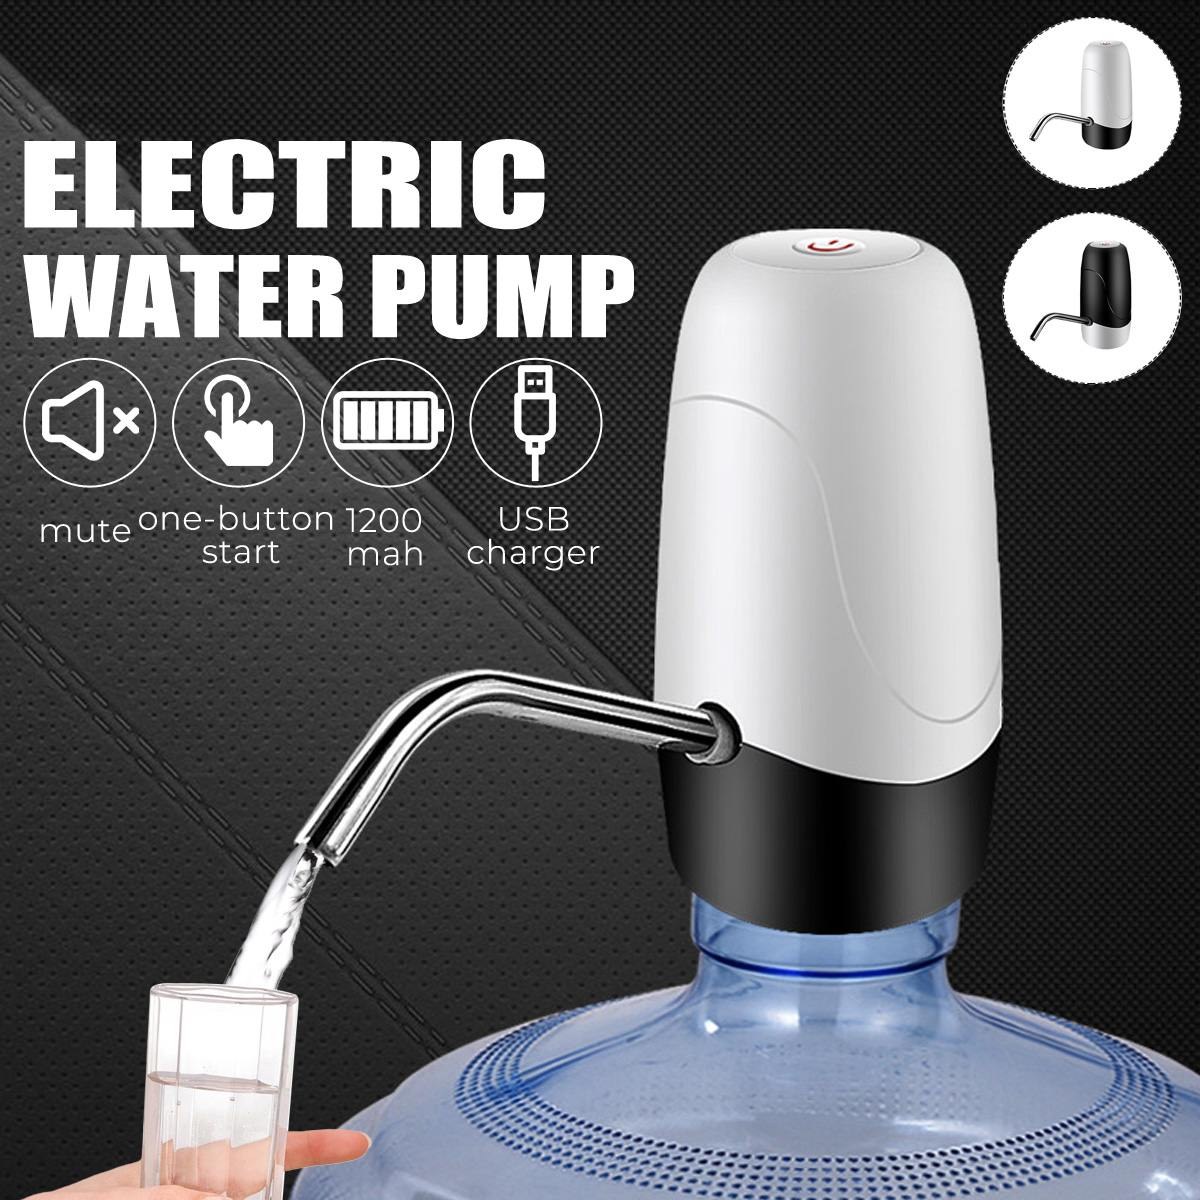 Automatic Electric Water Pump Dispenser Drinking Bottle Switch Smart Wireless Water Pump 3.7V USB Rechargeable Outdoor